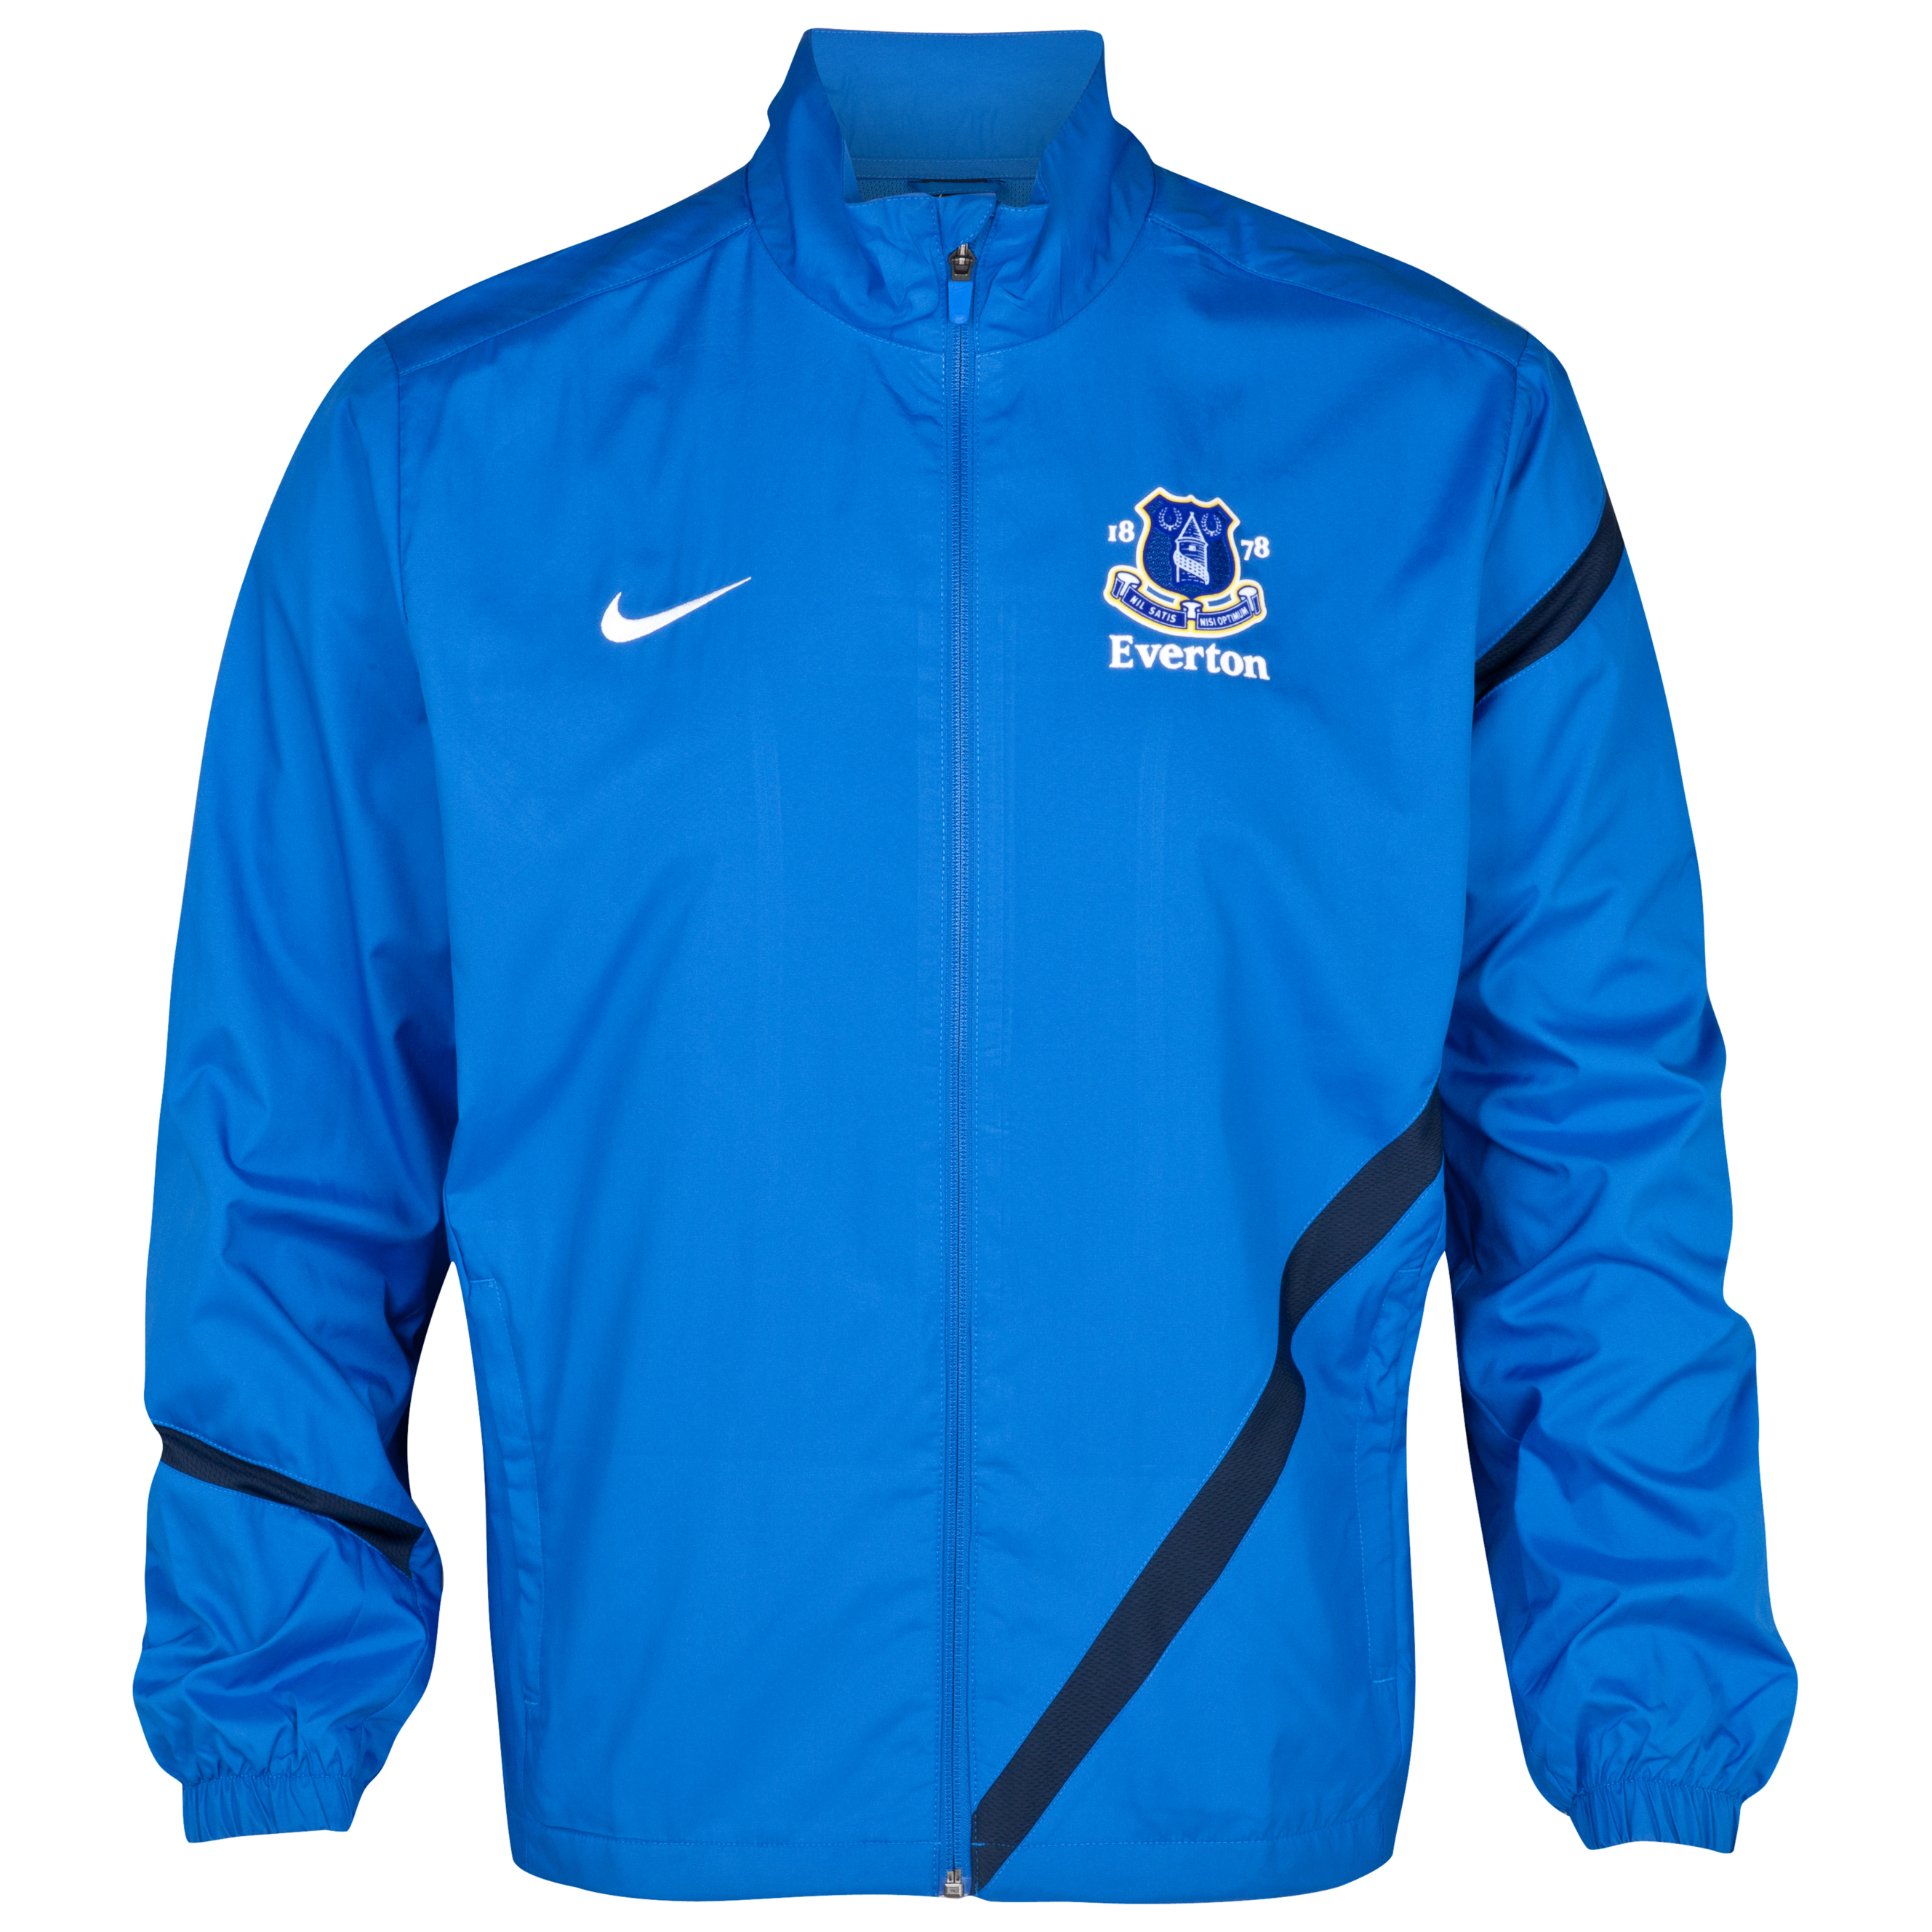 Everton Sideline Track Jacket - Royal Blue/Obsidian/White